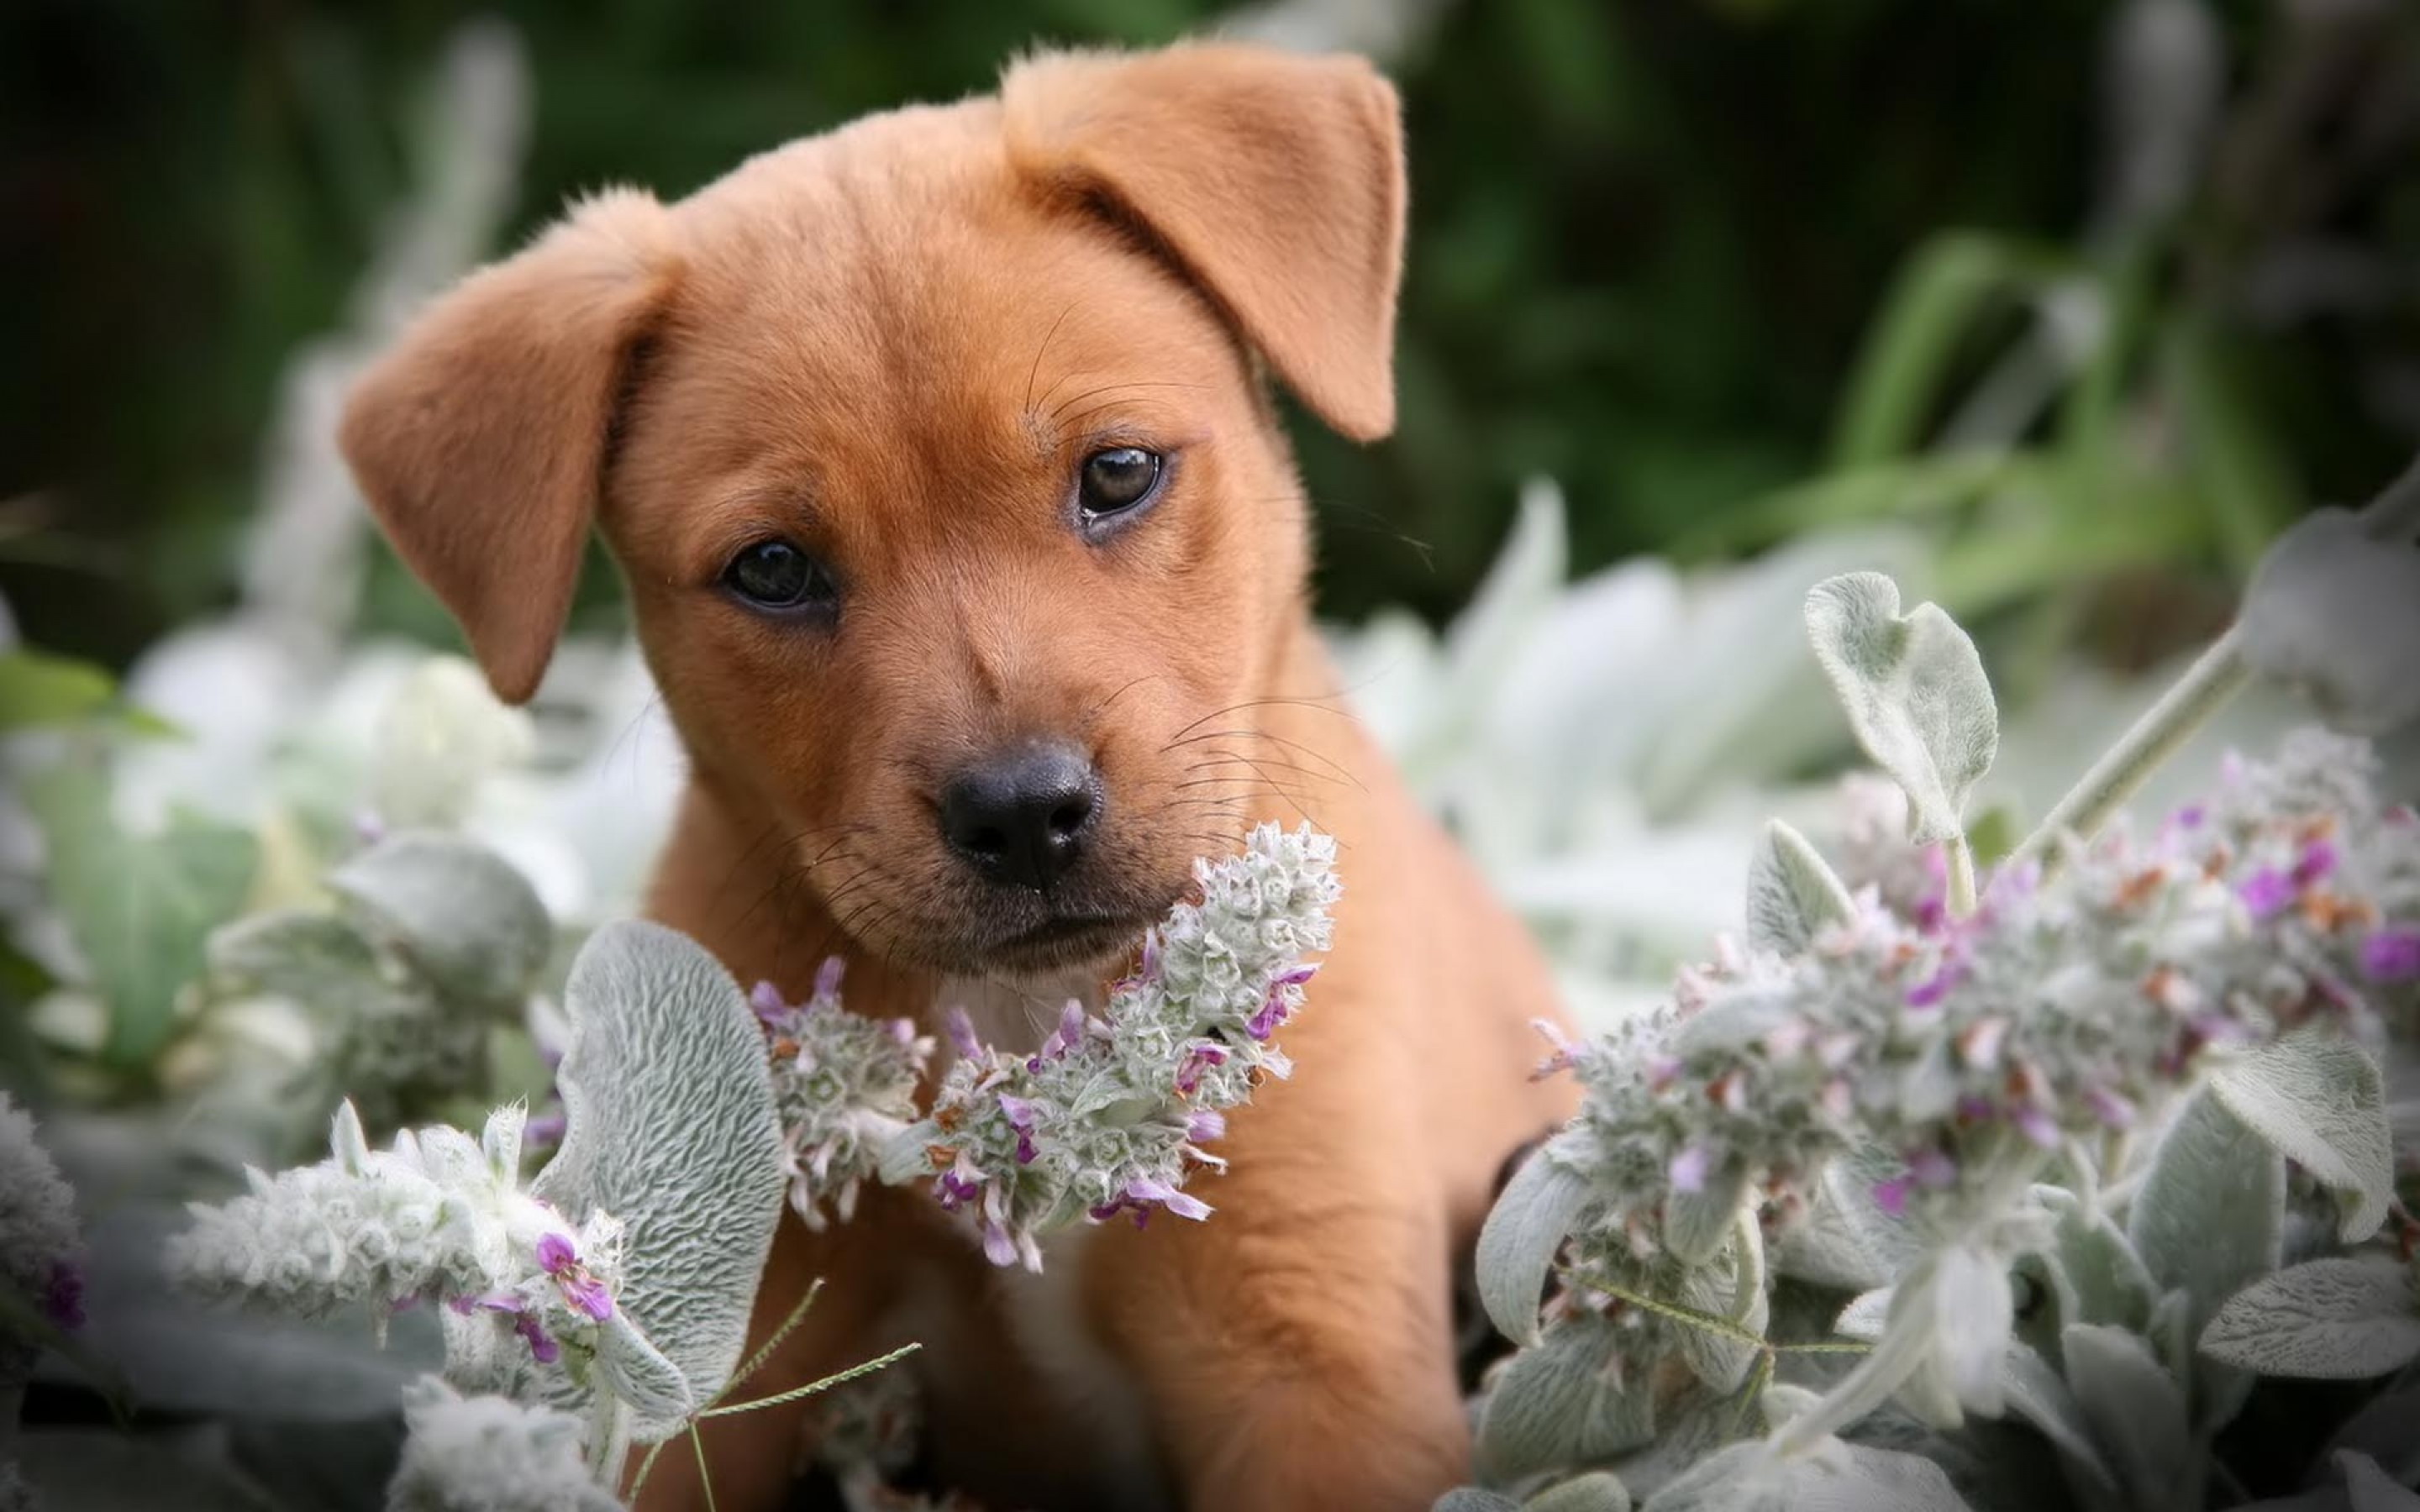 Cute Puppy Wallpapers For Desktop (58+ Images